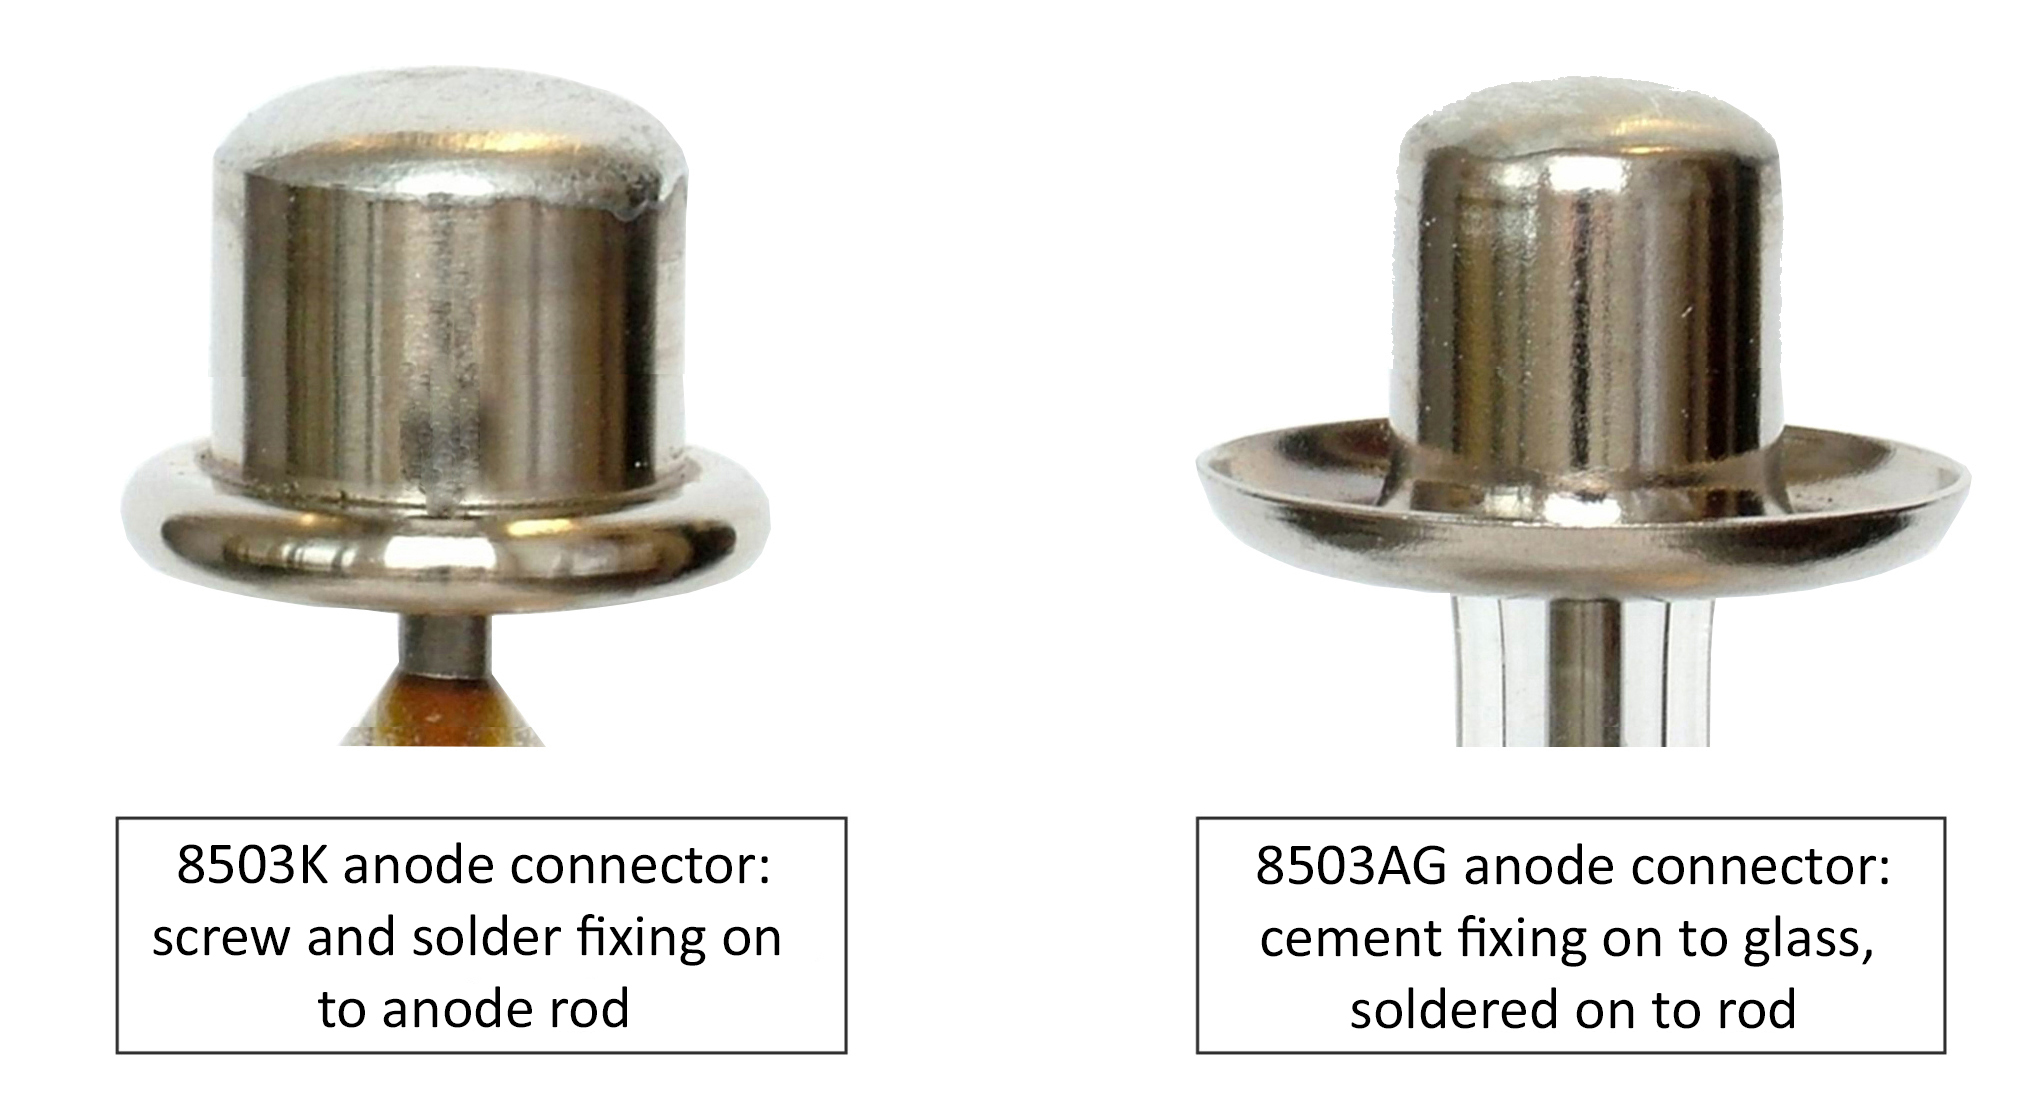 Difference-between-8503AG-en-8503K